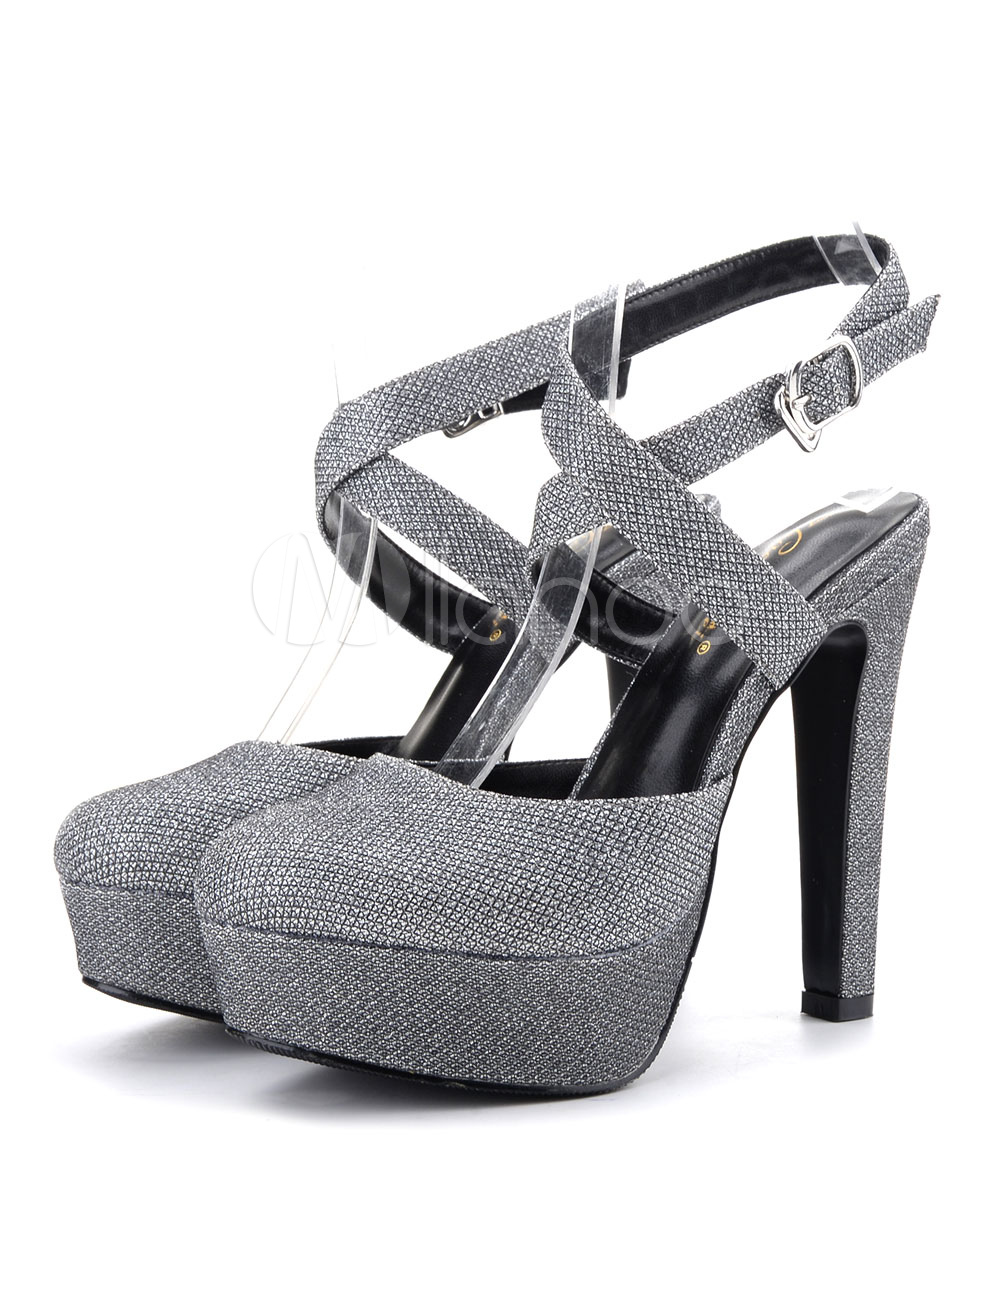 Buy Women High Heels Deep Grey Round Toe Criss Cross Party Shoes Glitter Evening Shoes for $40.49 in Milanoo store